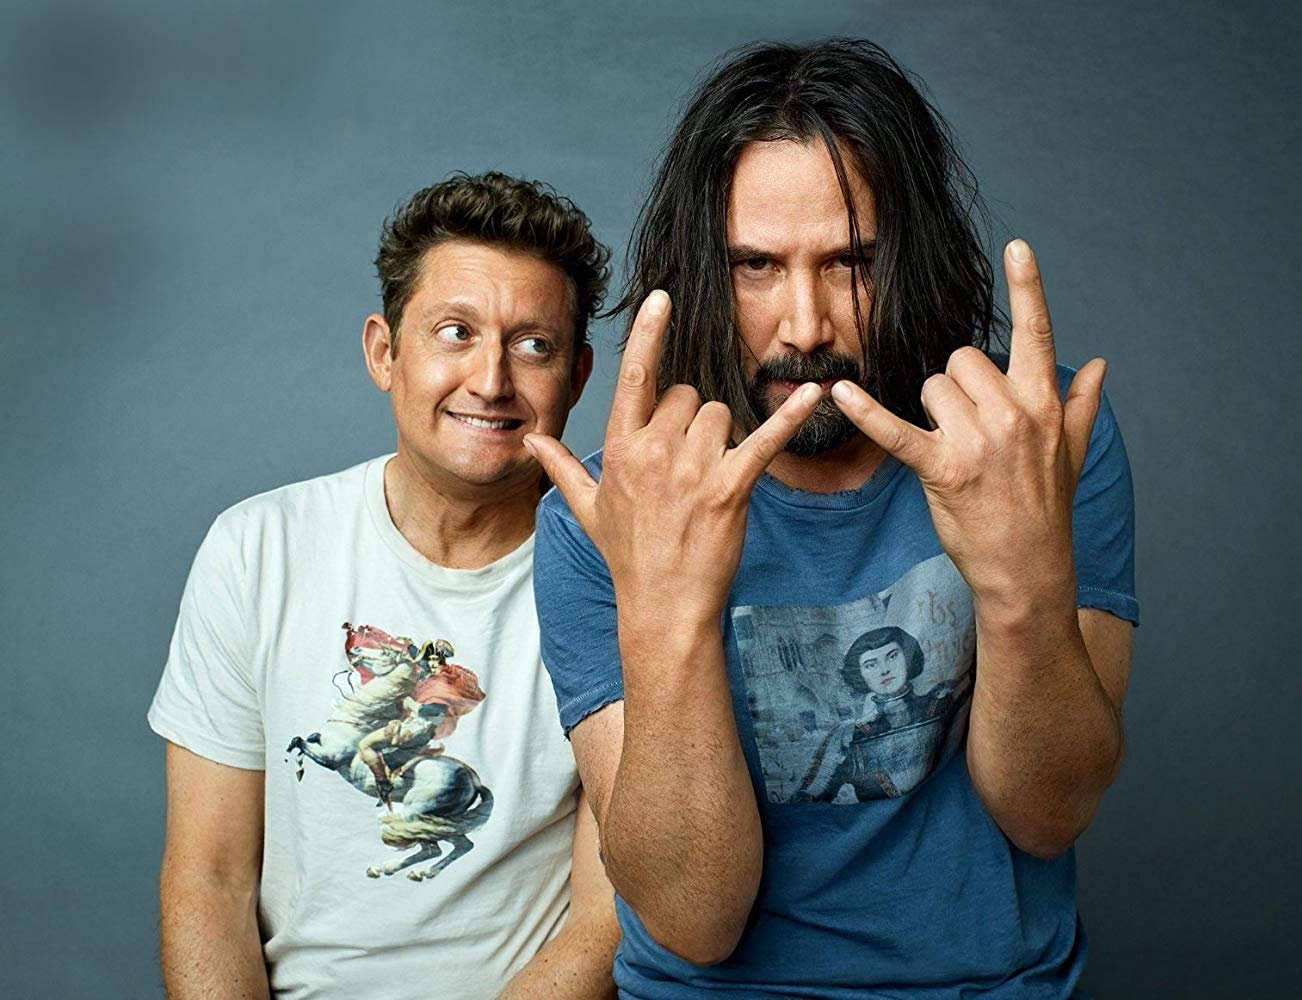 How bodacious: Keanu Reeves and Alex Winter start filming 'Bill